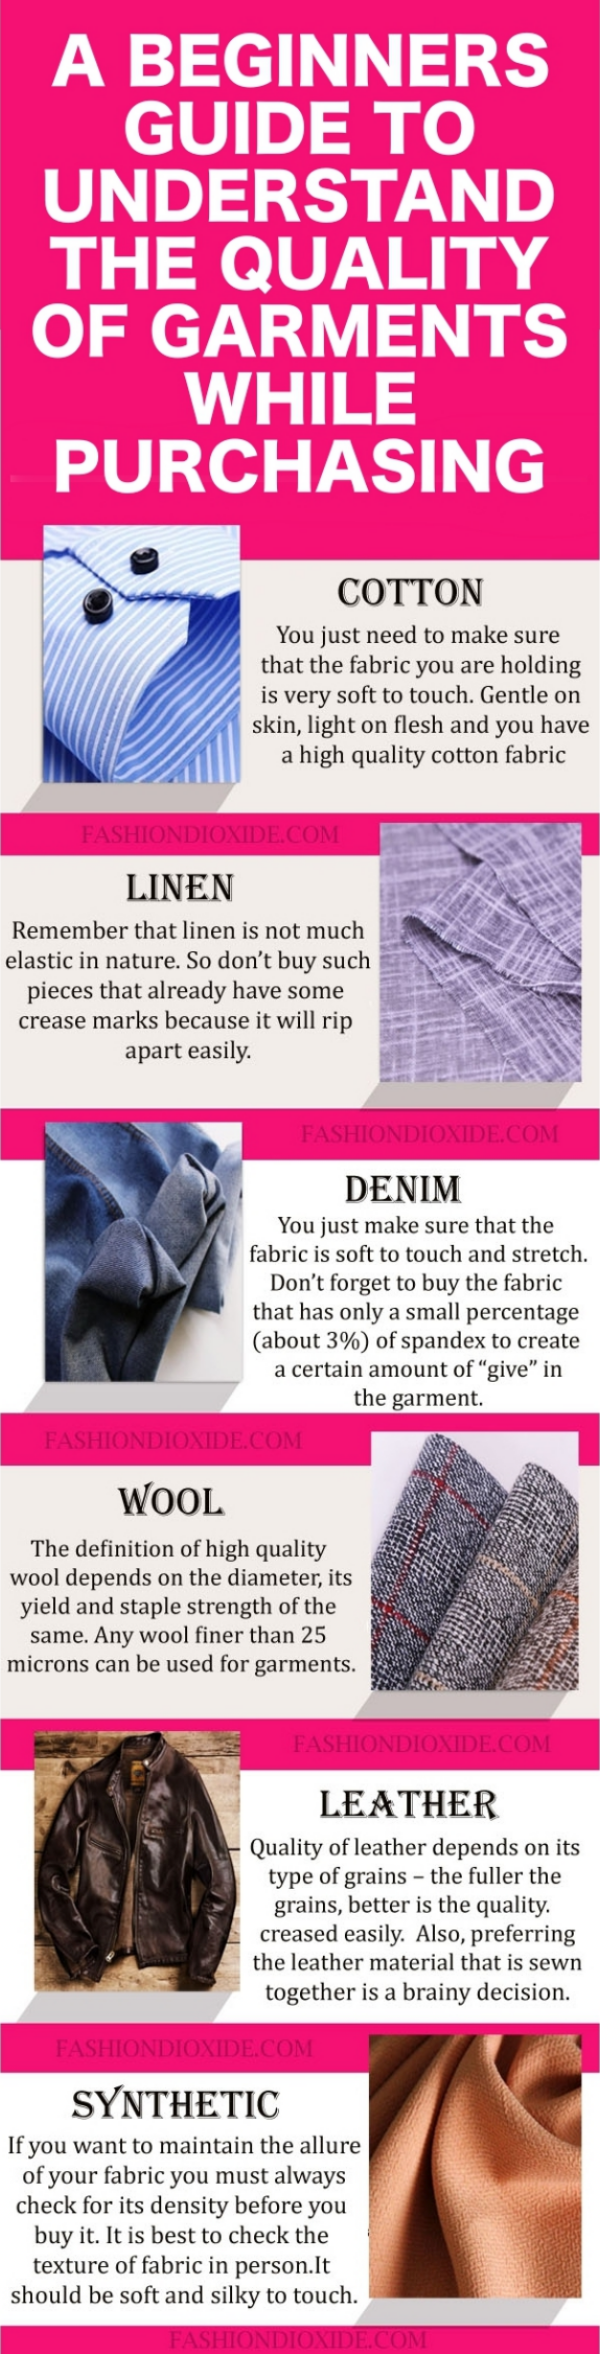 A-Beginners-Guide-to-Understand-the-Quality-ofGarments-While-Purchasing